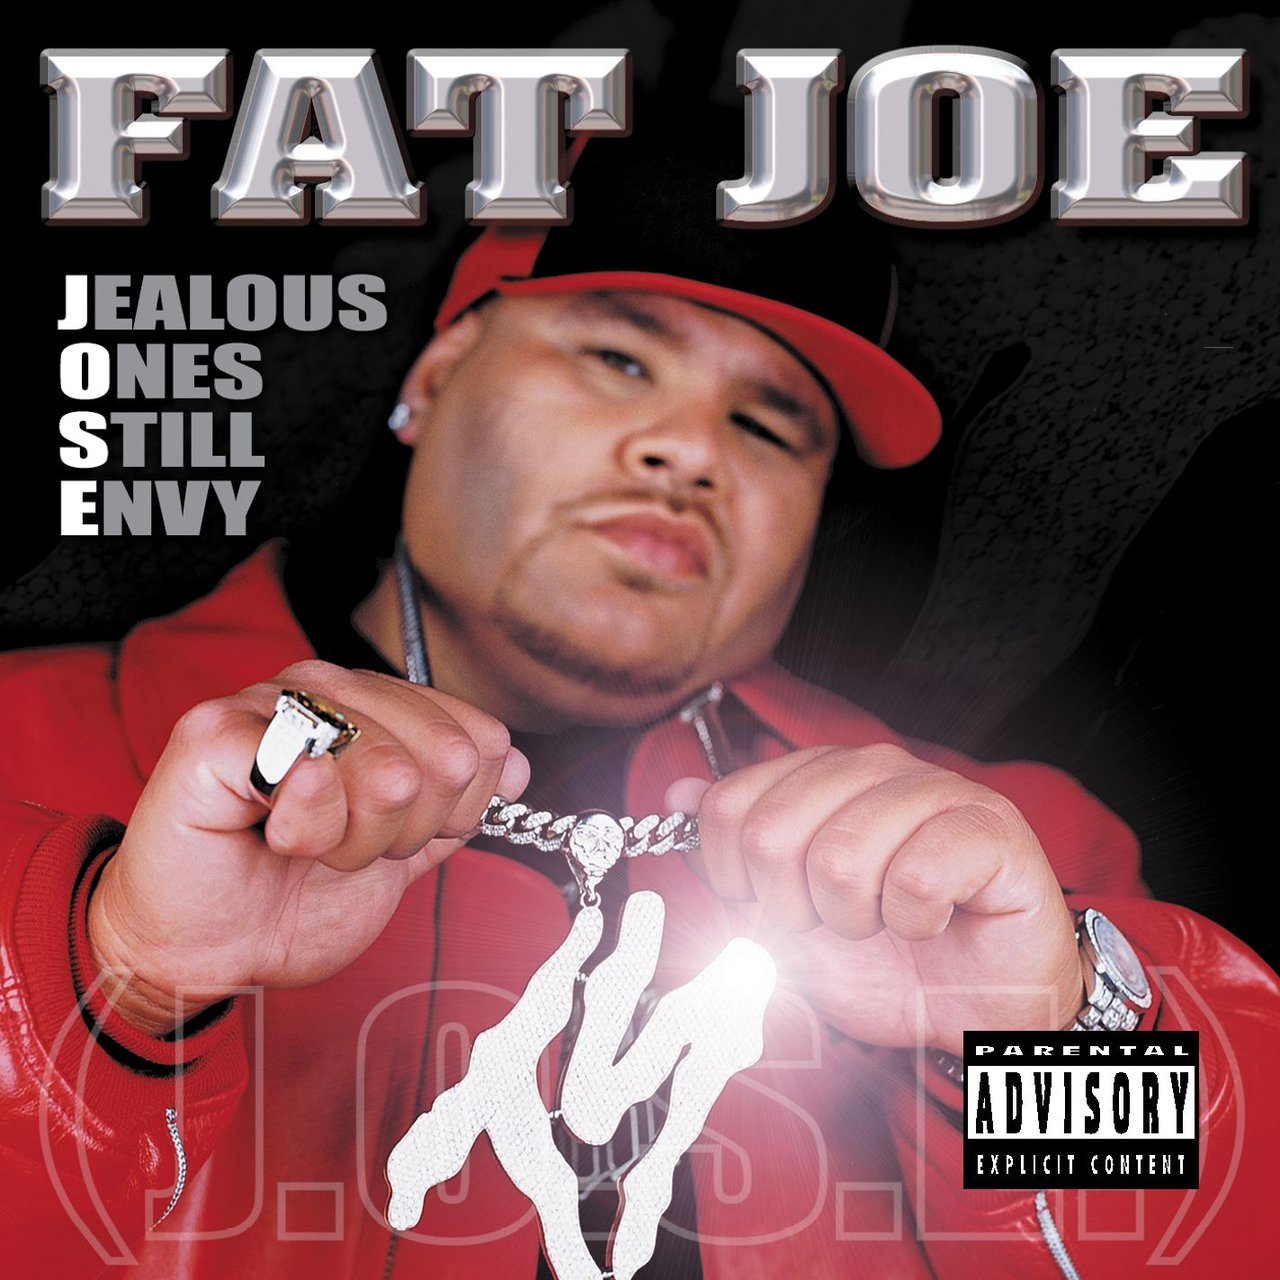 Jealous Ones Still Envy (J.O.S.E) [Explicit]